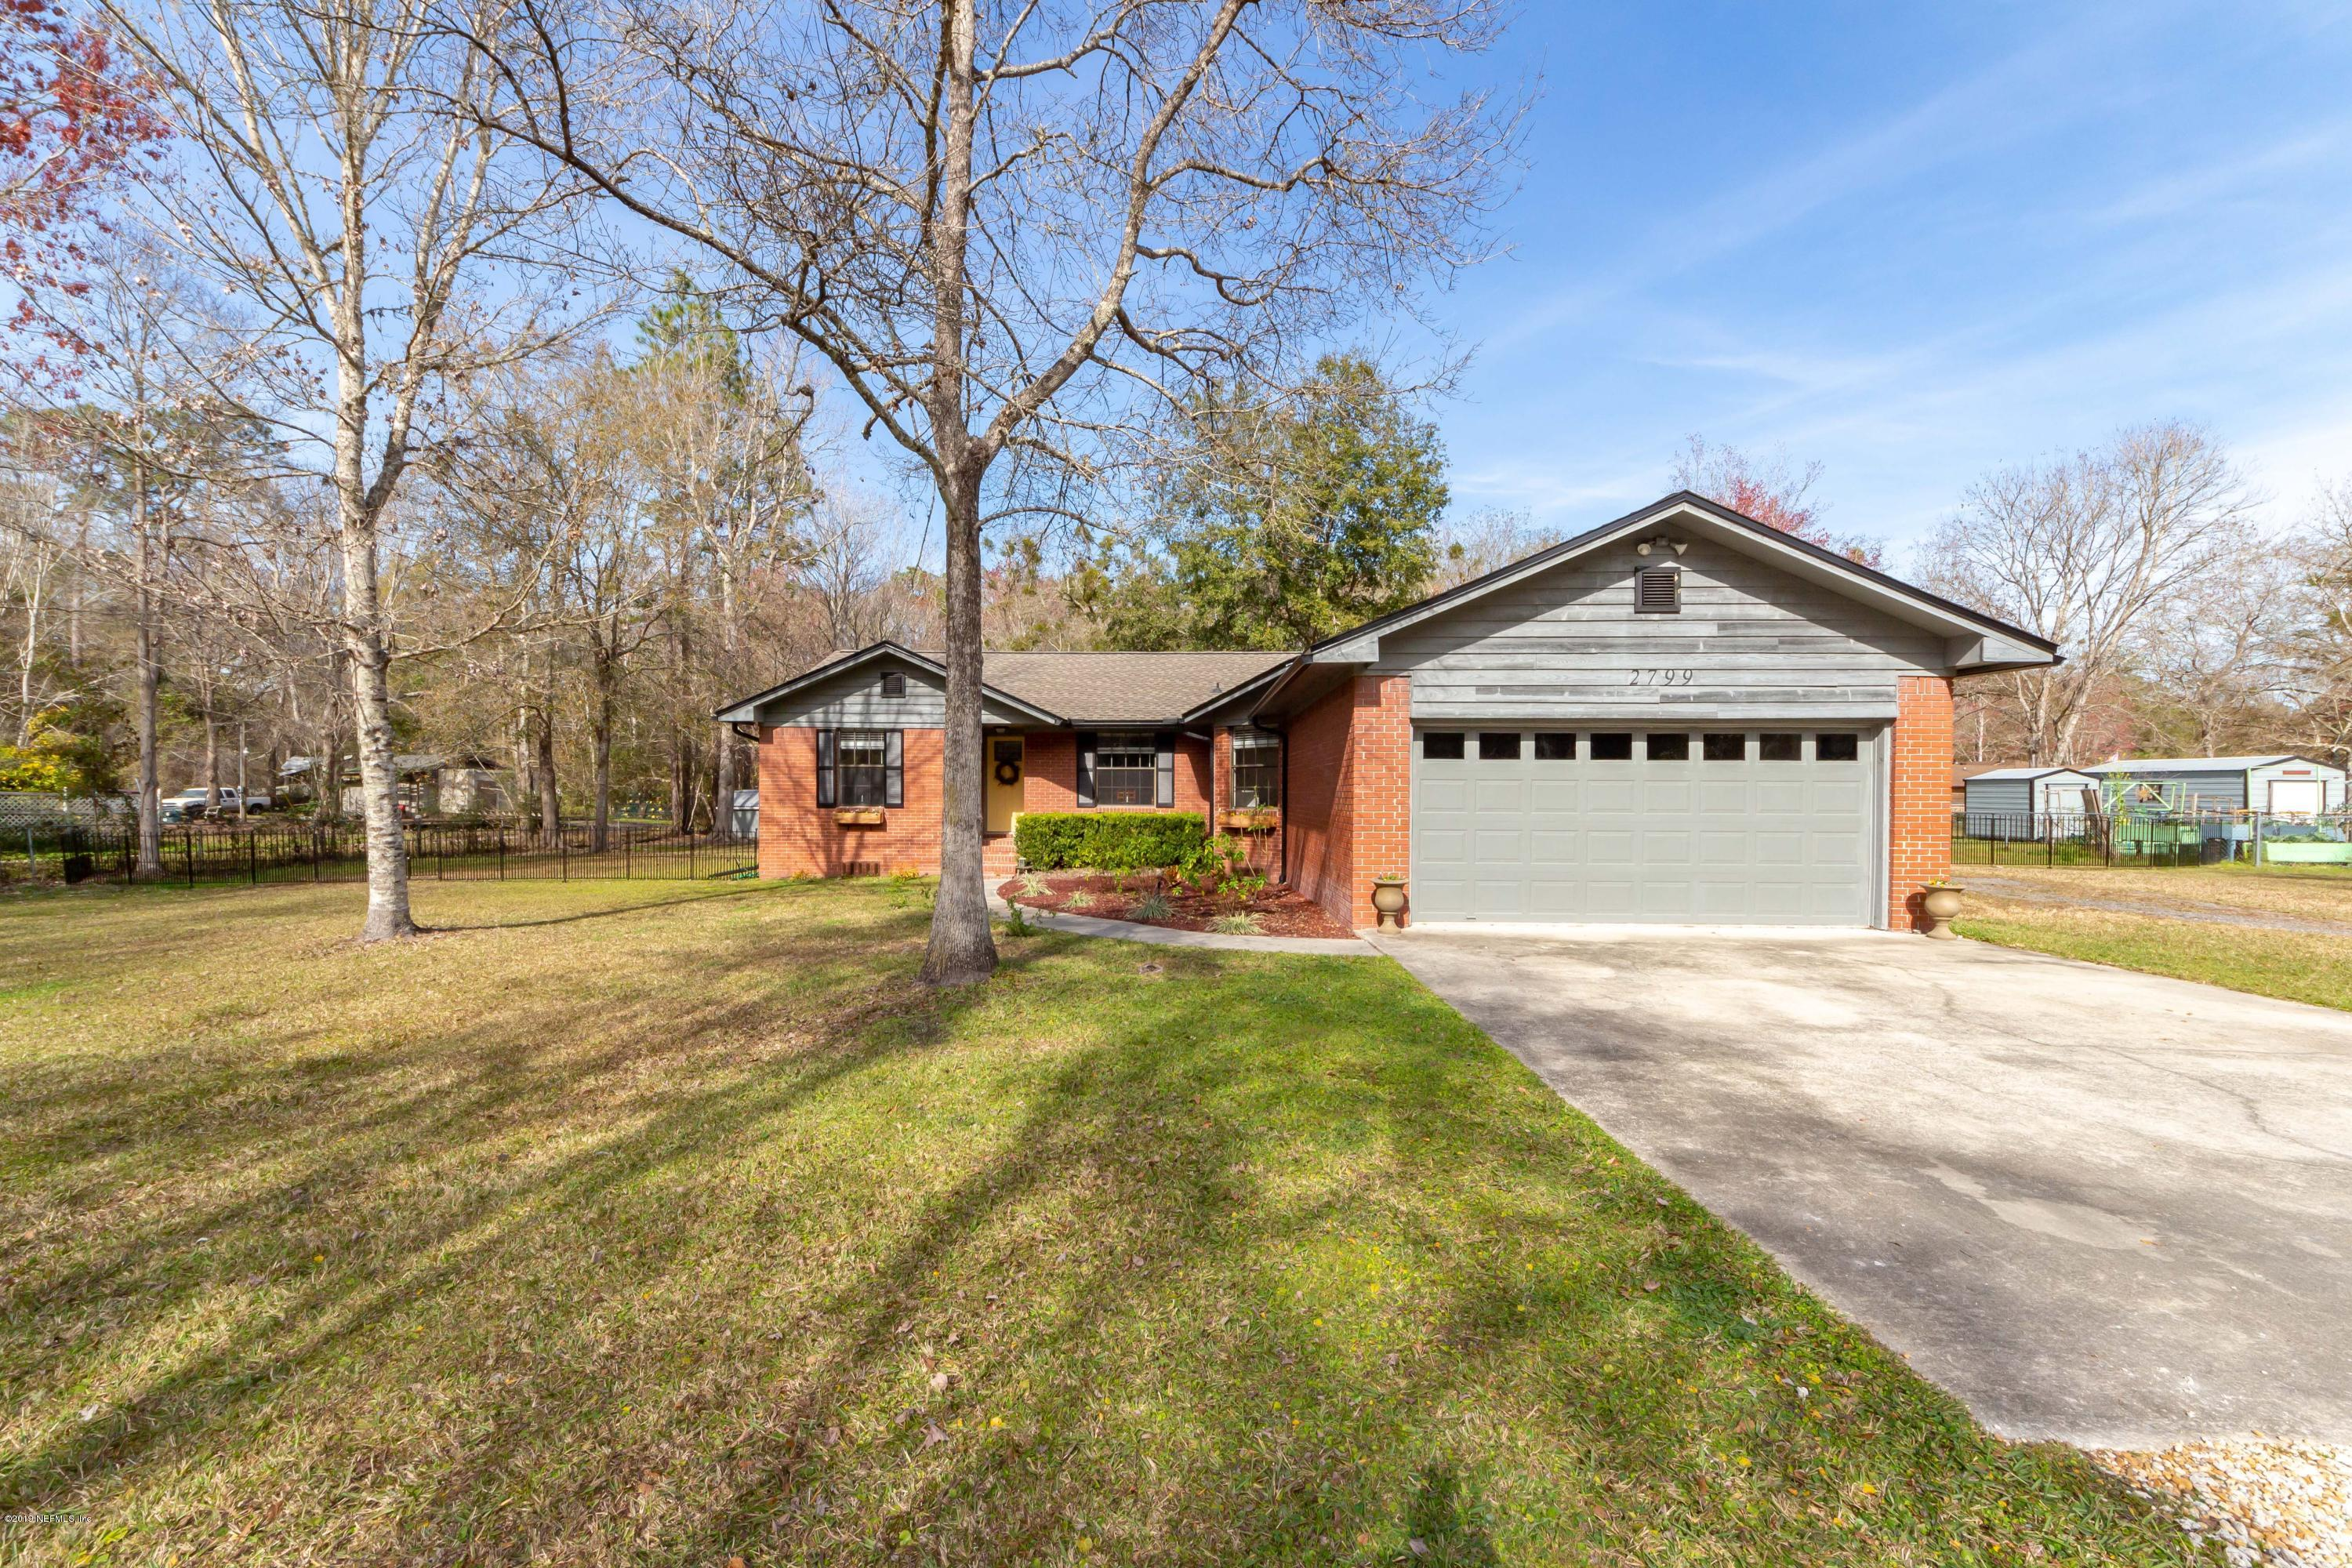 Photo of 2799 RUSSELL, GREEN COVE SPRINGS, FL 32043